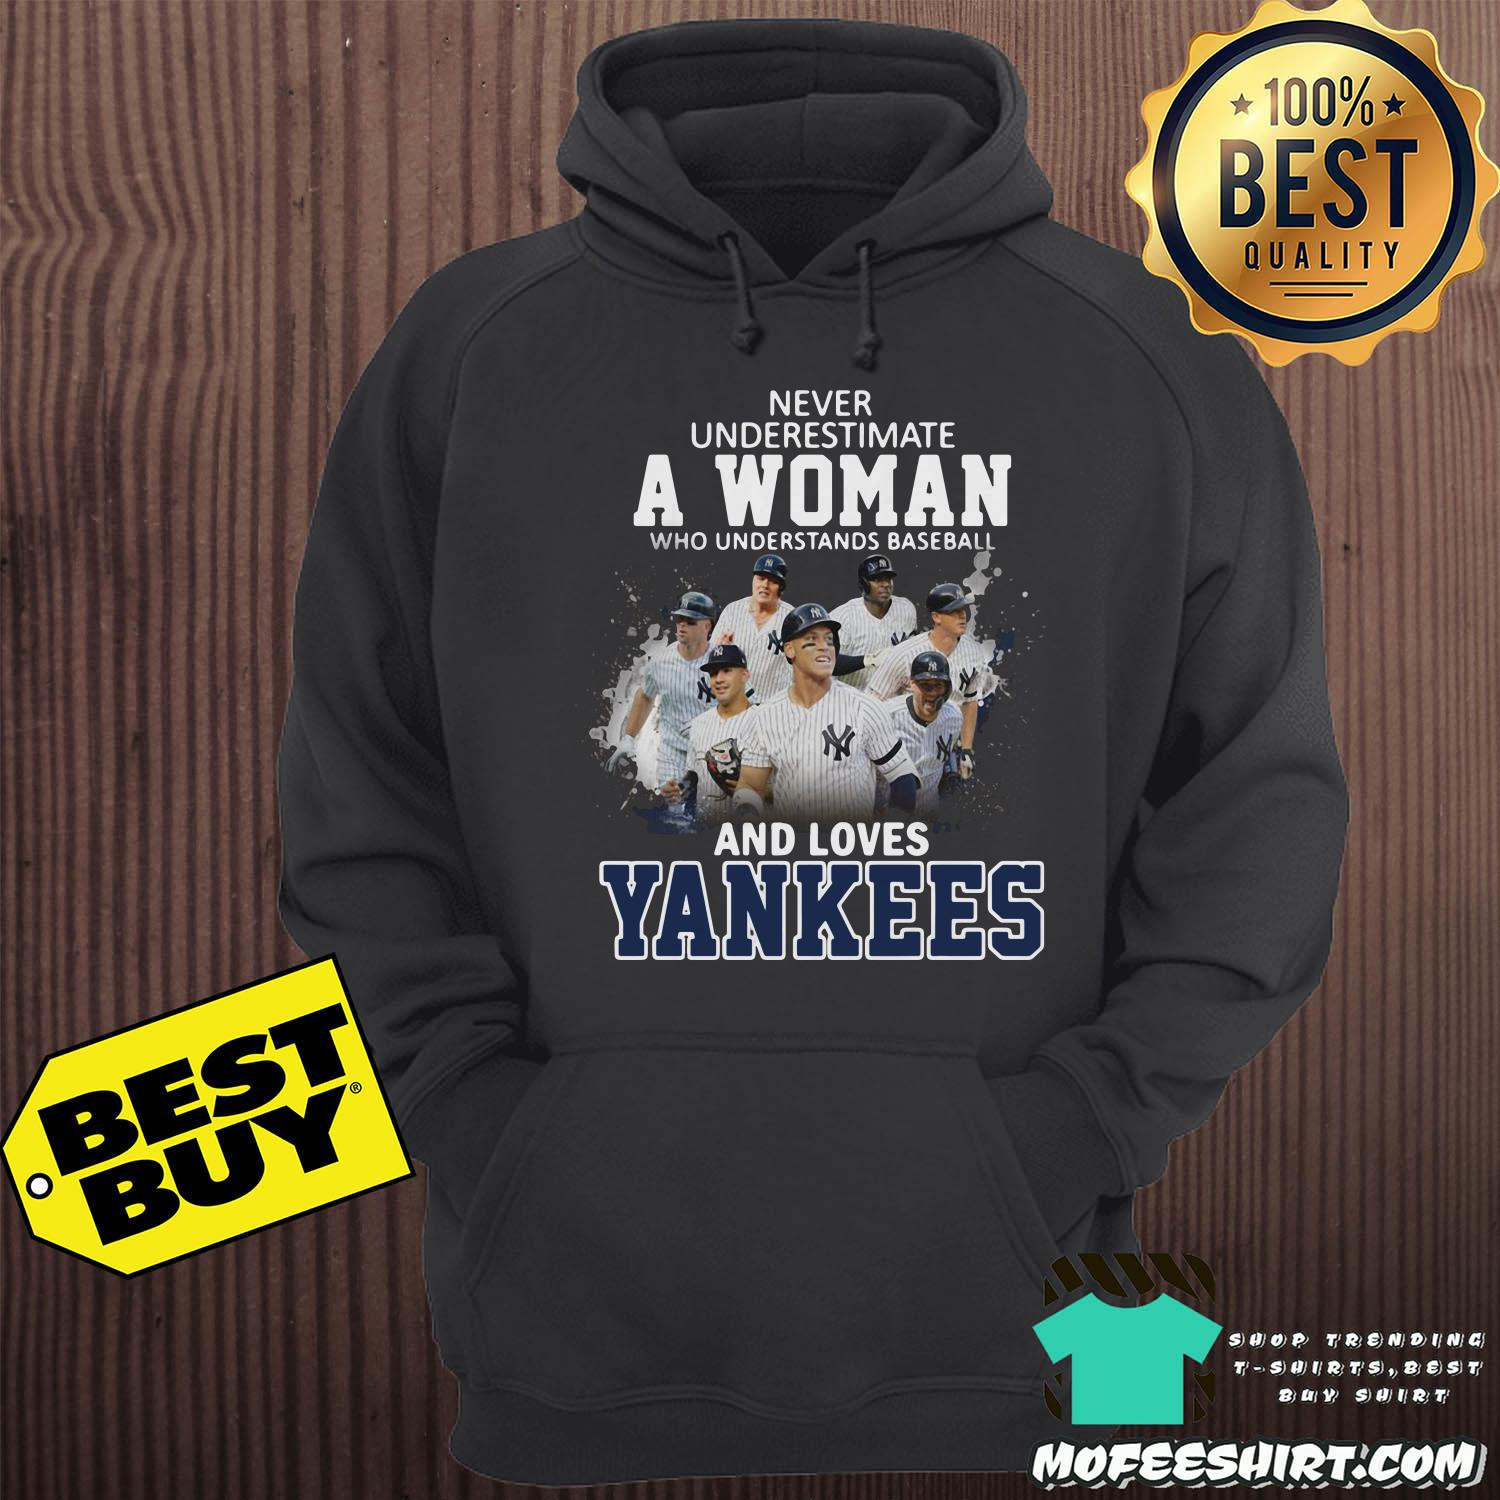 never underestimate a woman who understands baseball and loves new york yankees hoodie - Never Underestimate A Woman Who Understands Baseball And Loves New York Yankees shirt